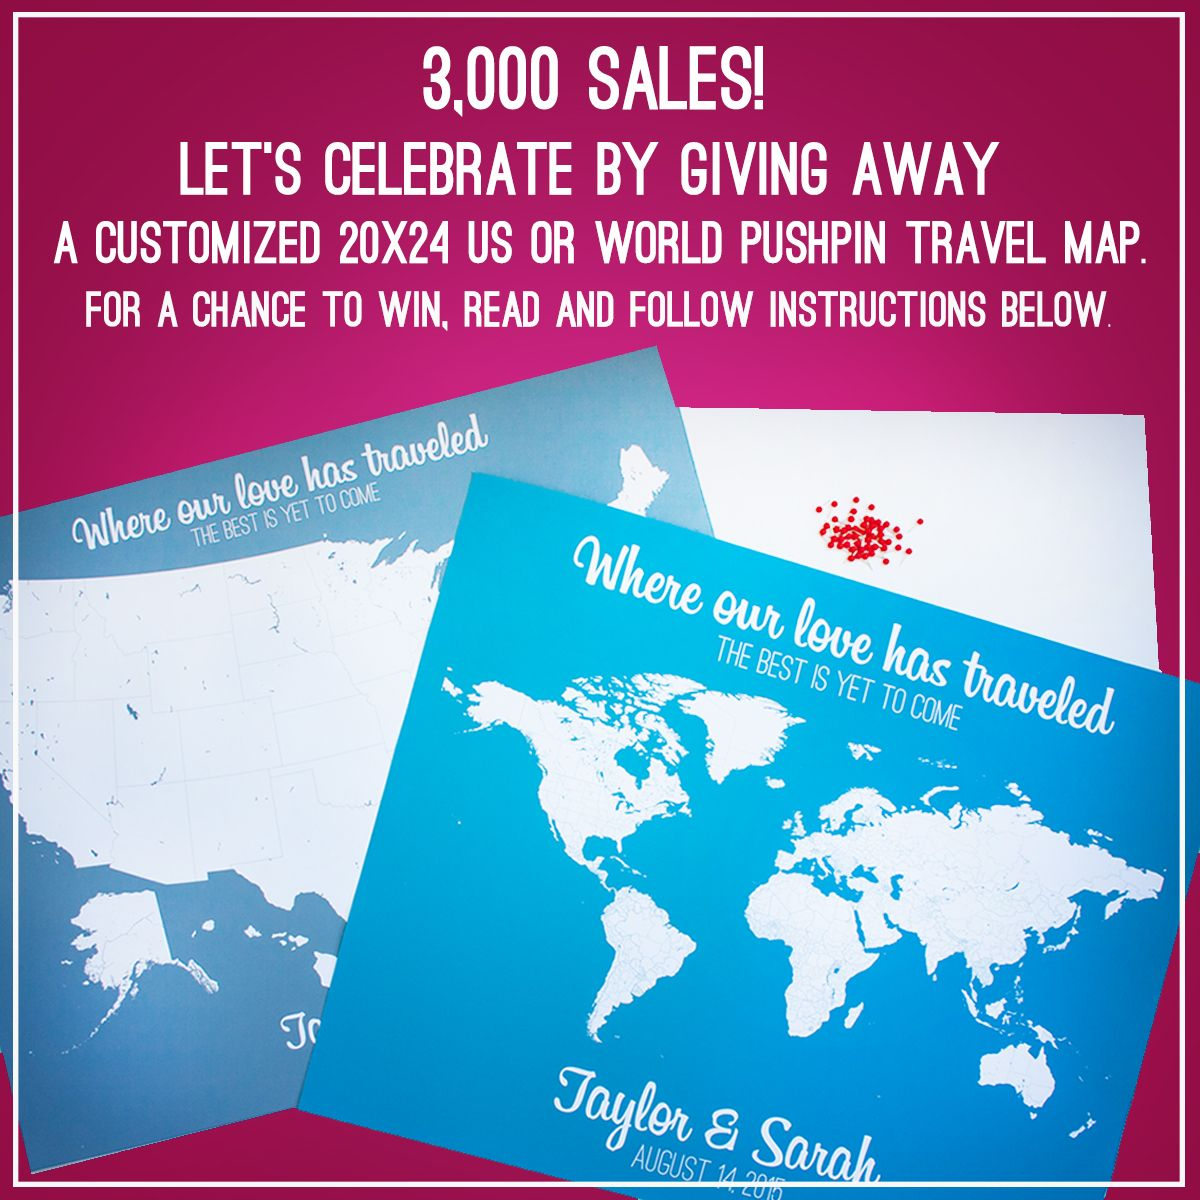 3,000 sales! Let's celebrate by giving away a customized 20x24 US or World pushpin travel map. FOLLOW THE INSTRUCTIONS FOR A CHANCE TO WIN >> 1) Like the SoleStudio Facebook Page >> http://bit.ly/2bMZMeI  AND 2) Comment on this post and tell us your favorite travel destination. GO!!! The winner will be chosen Thursday, September 1, 2016, at 7:00 p.m. EST. Don't miss this opportunity! :) #giveaway #personalizedmaps #pushpinmaps #travelmaps #travelers #love #travellove #creativestudio…